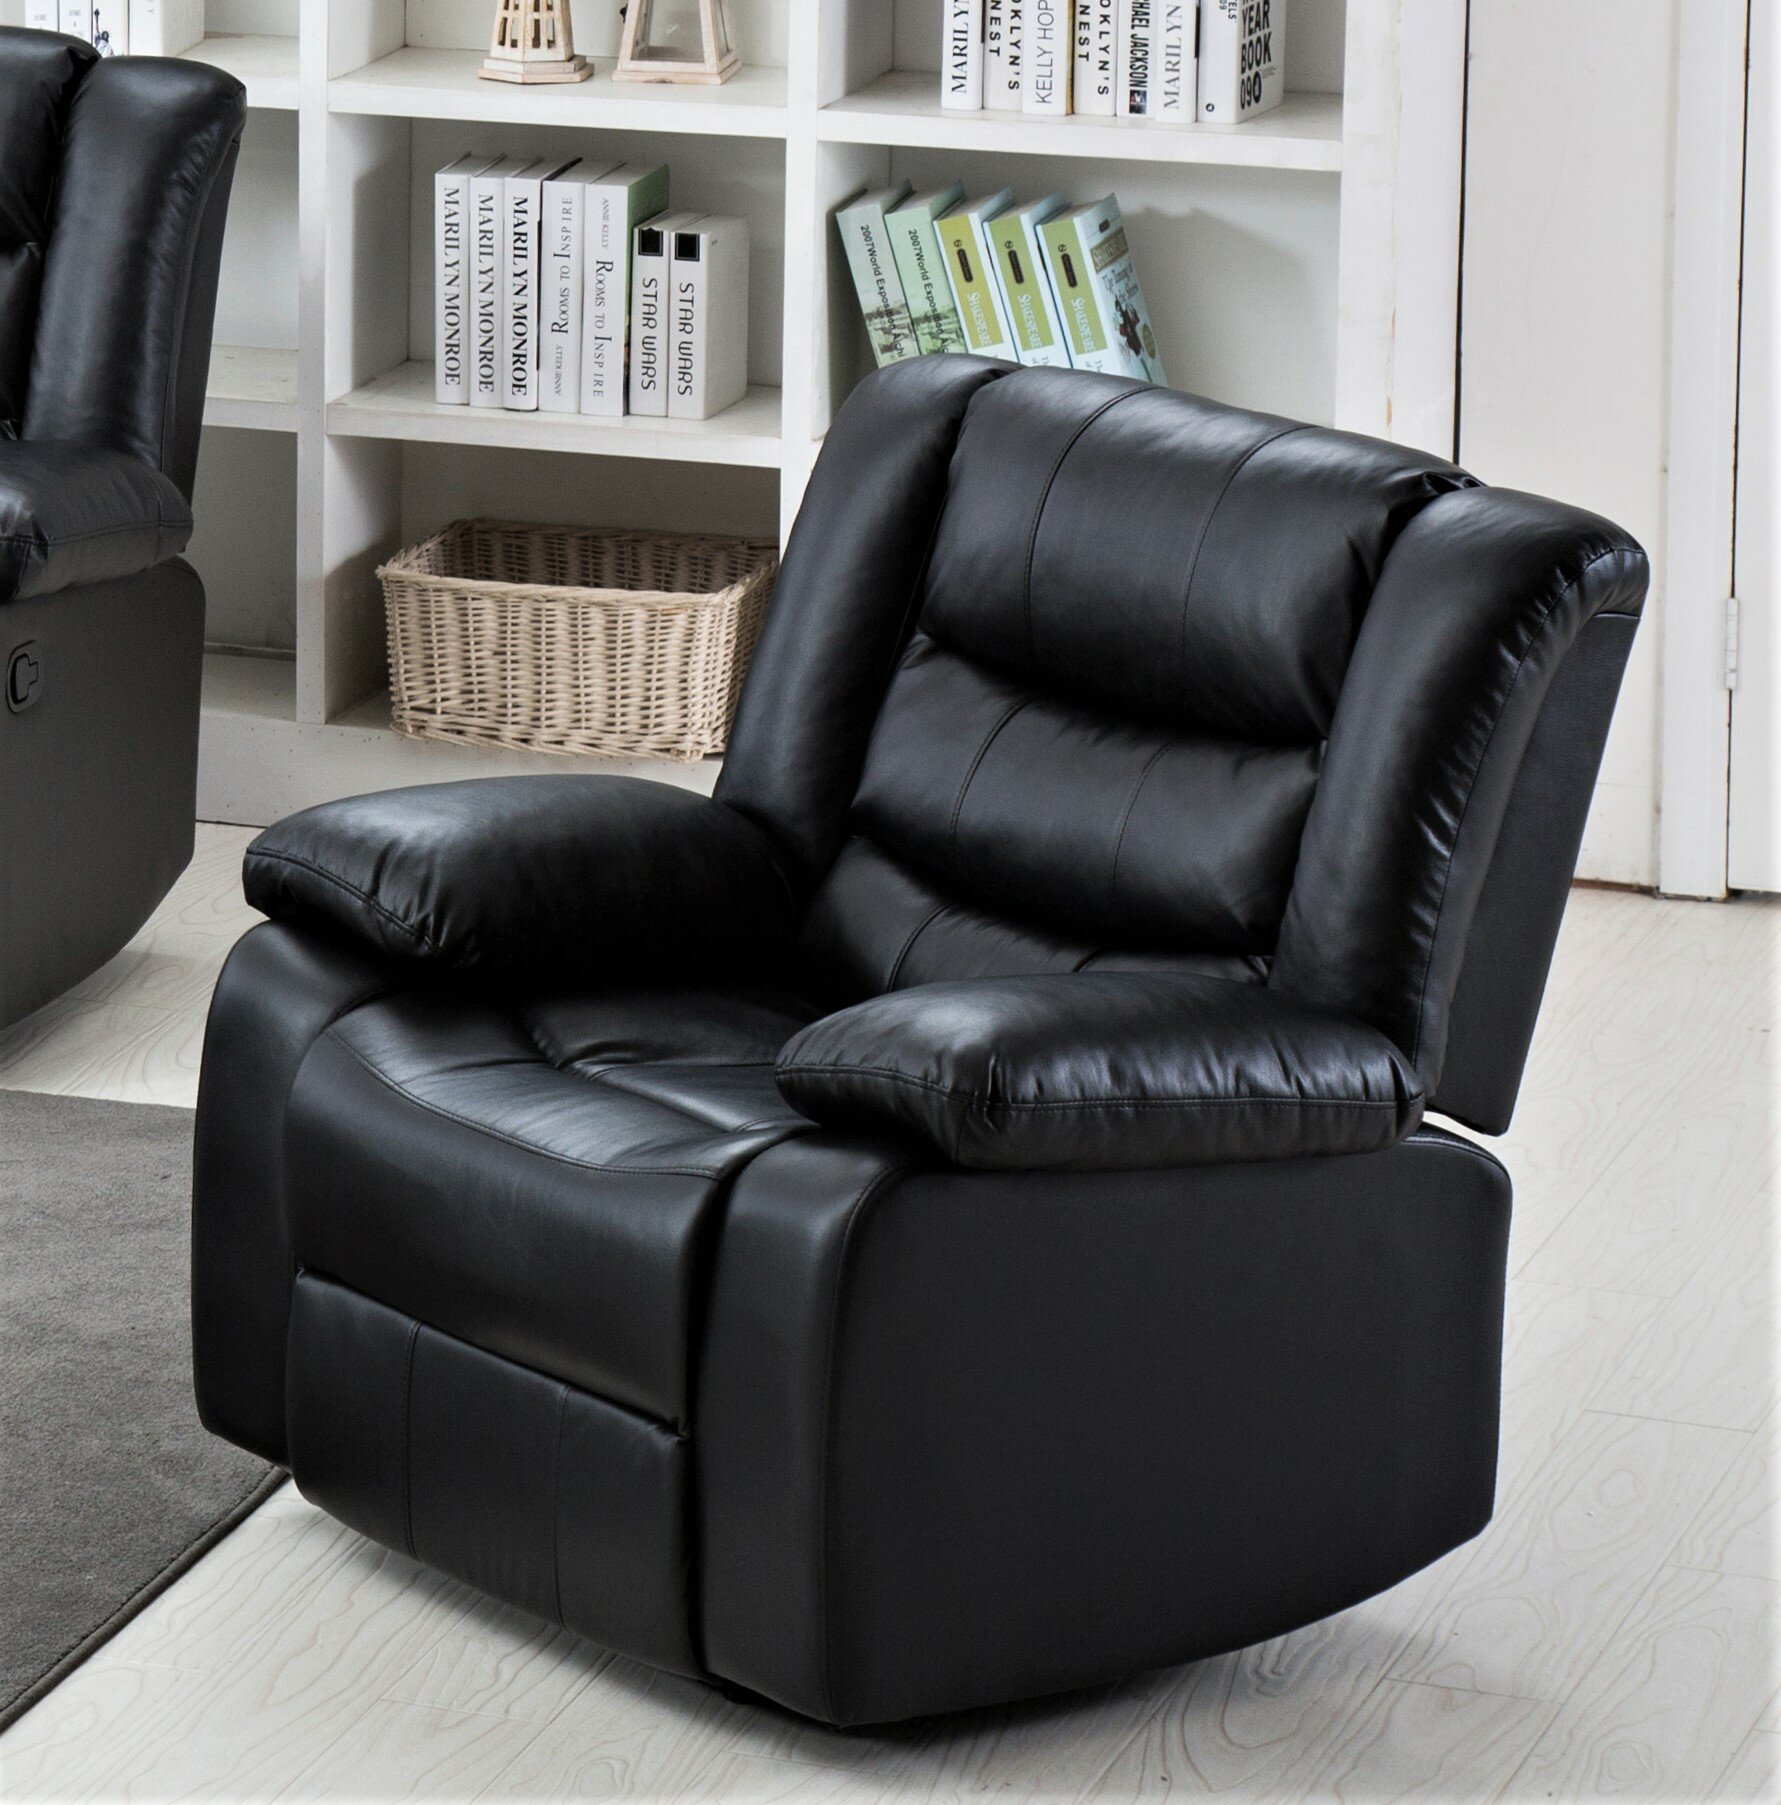 Swell Lange Manual Recliner Creativecarmelina Interior Chair Design Creativecarmelinacom